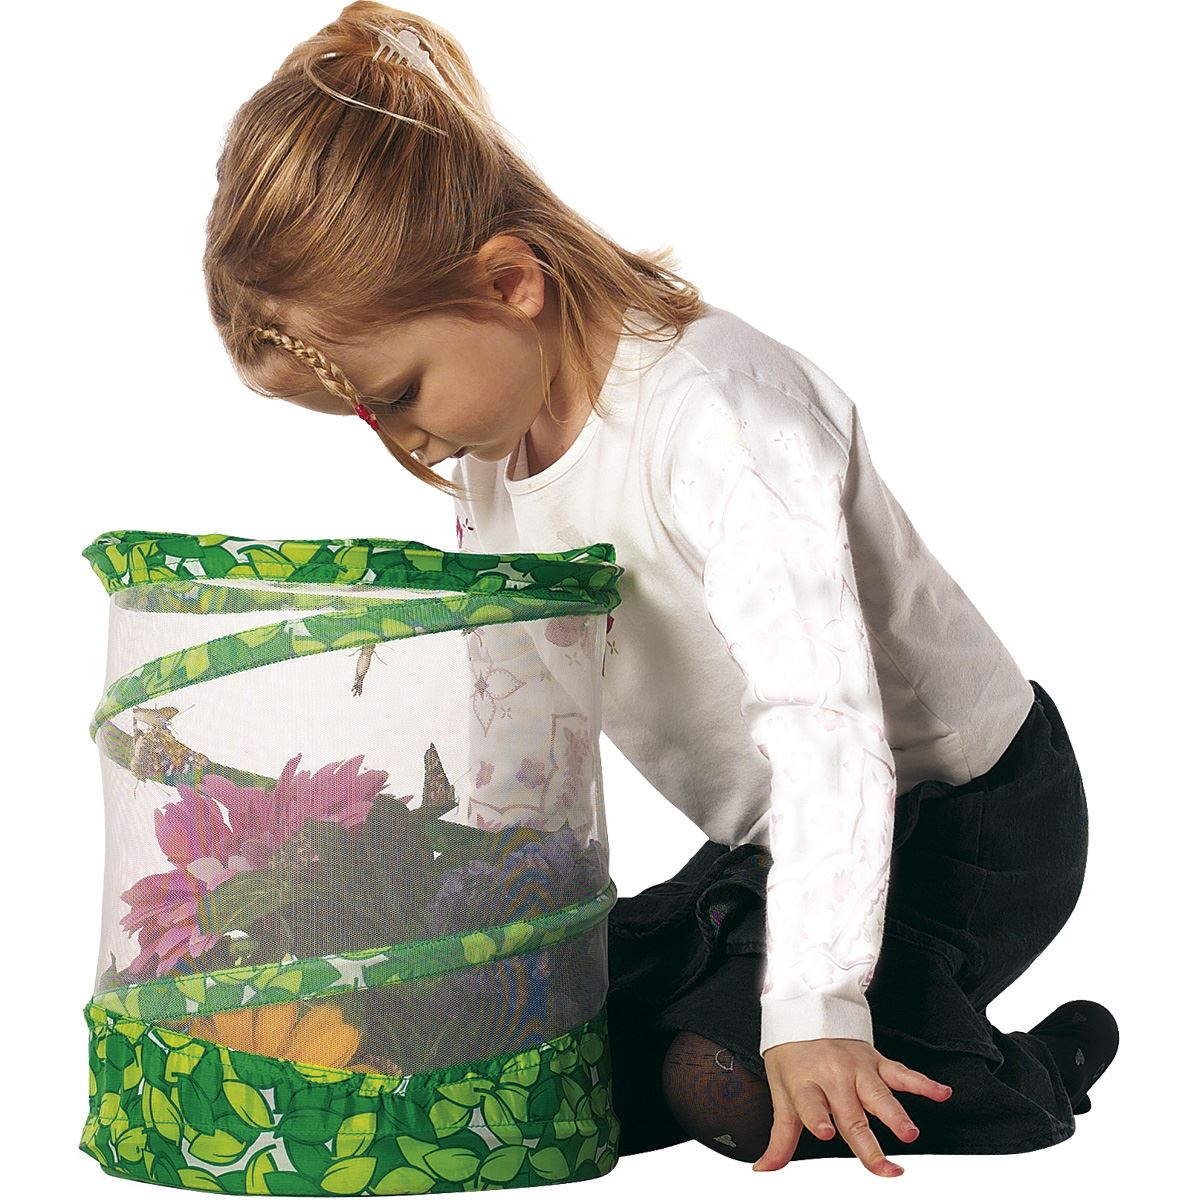 Live Butterfly Garden Kit Explore Nature With A